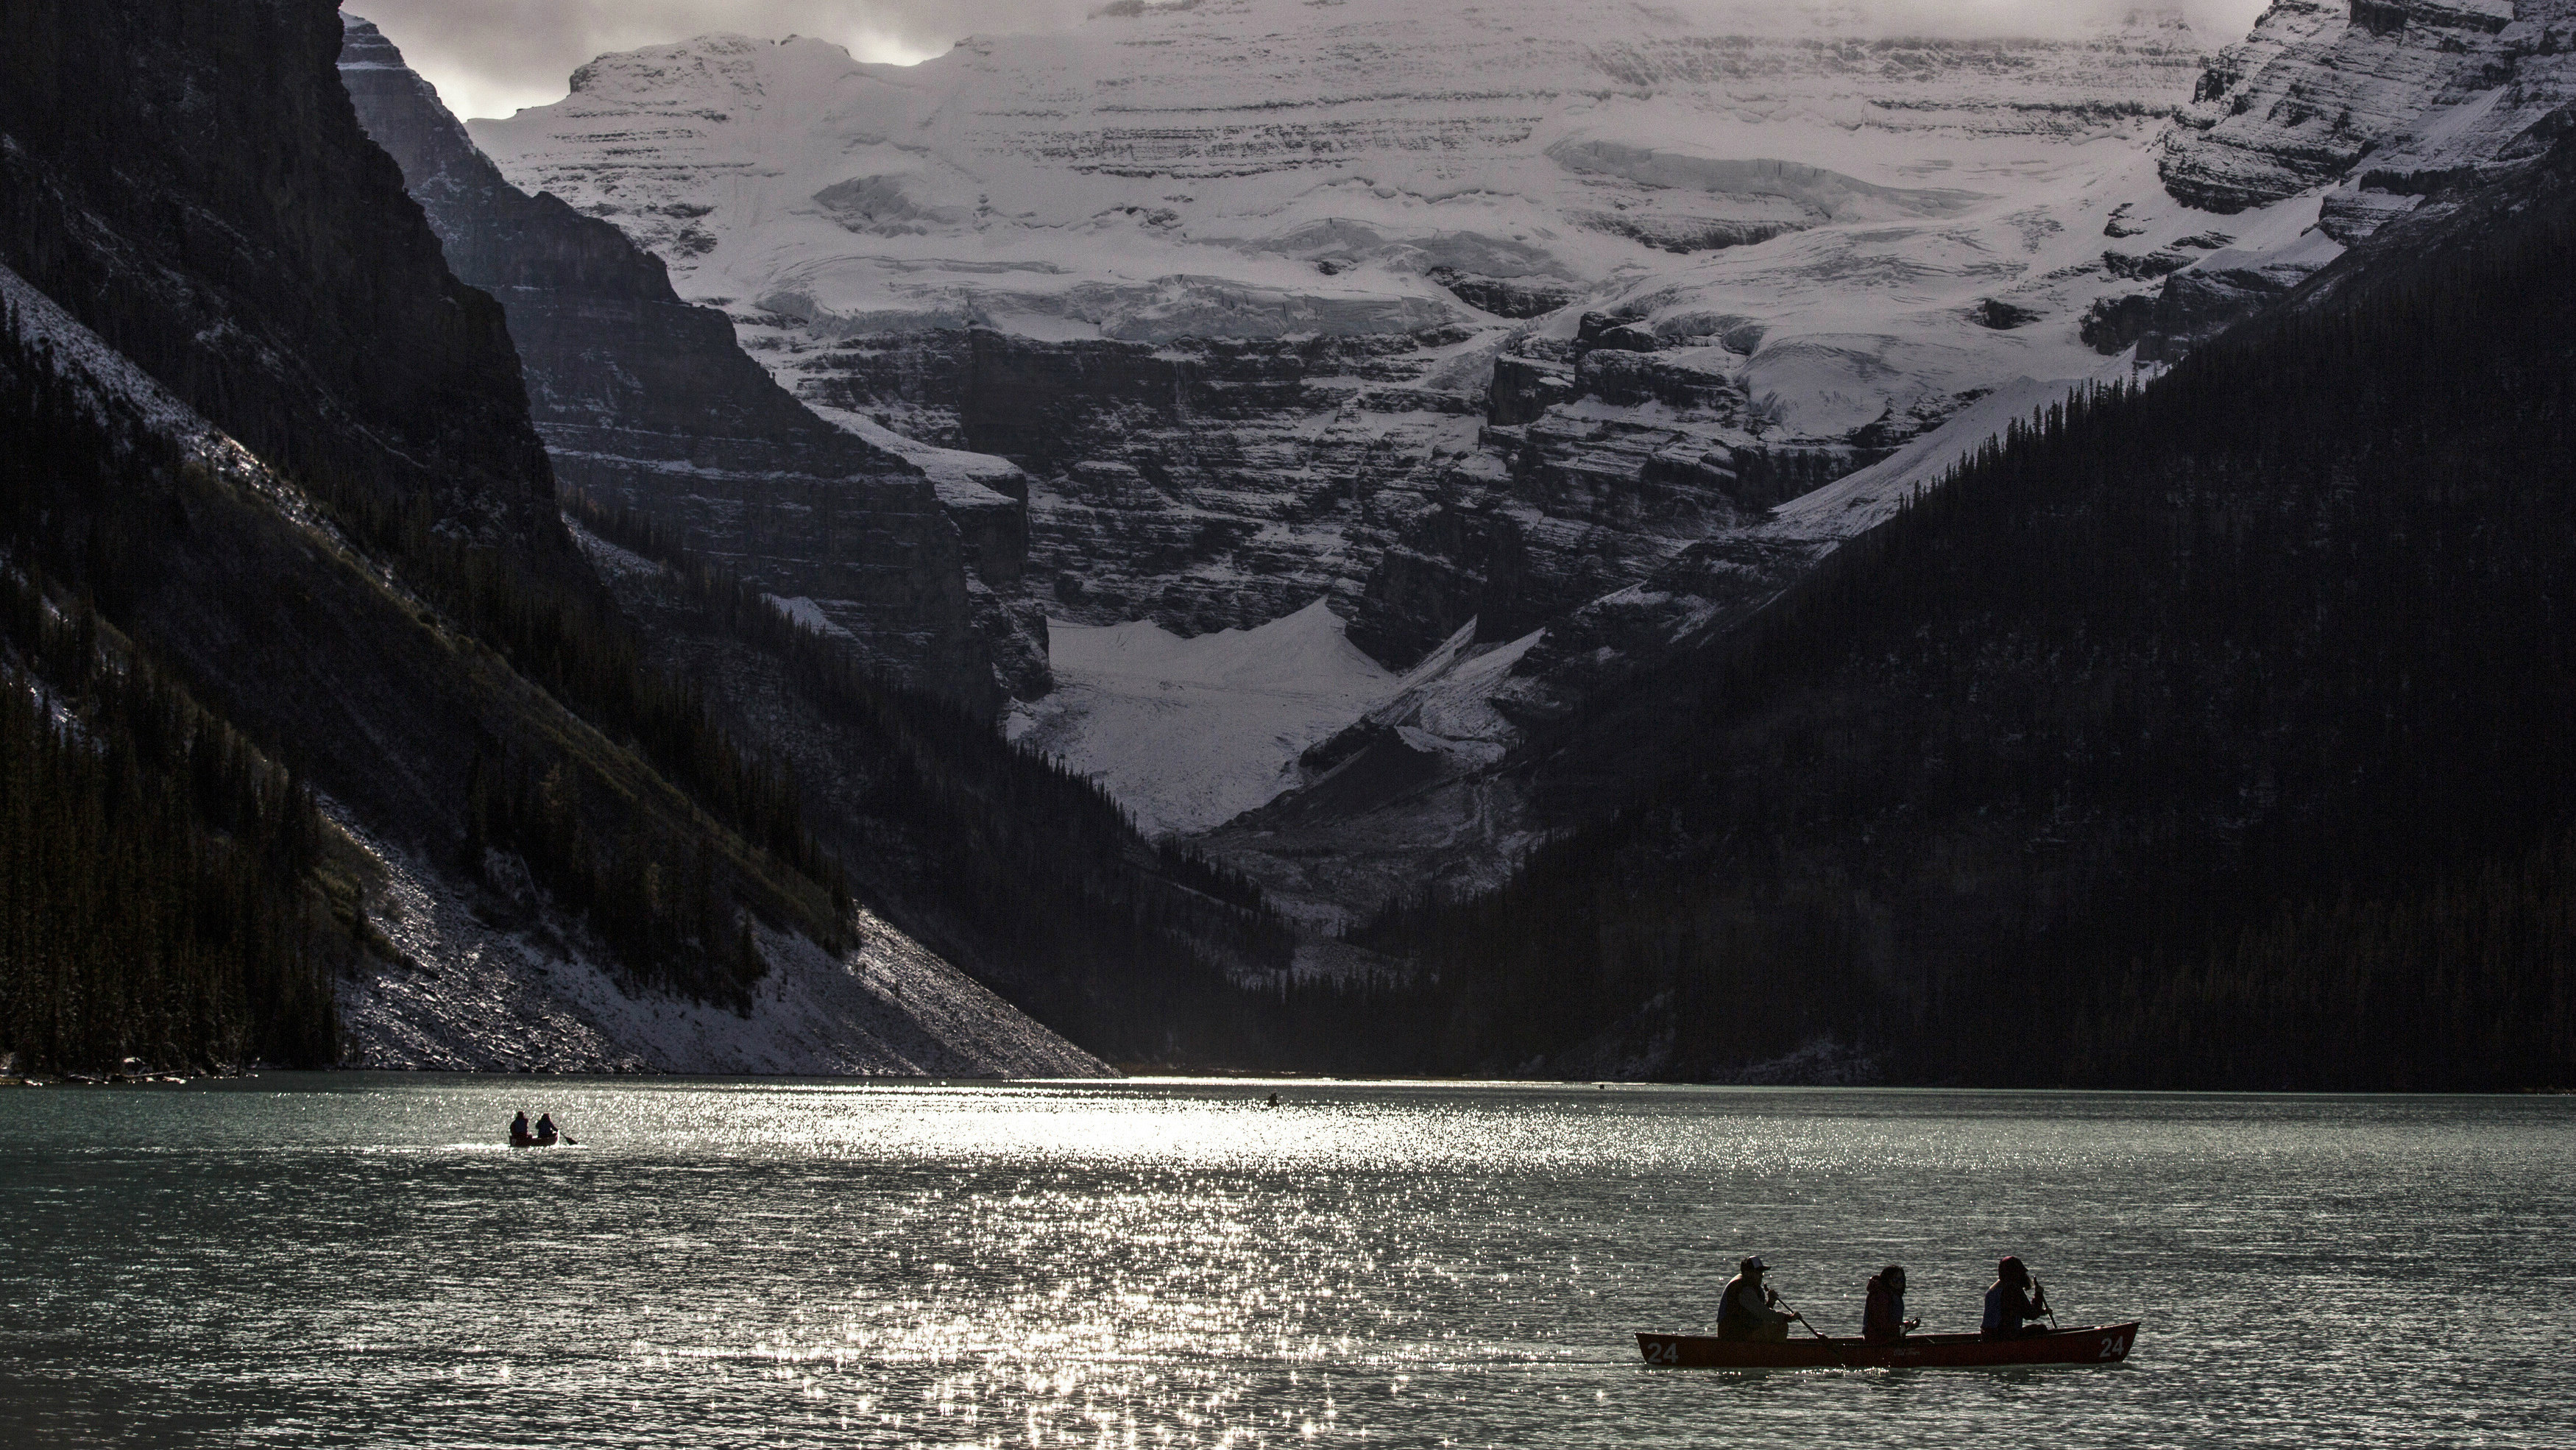 People canoe on Lake Louise at Banff National Park, in the Canadian Rocky Mountains outside the village of Lake Louise, Alberta, October 2, 2014.